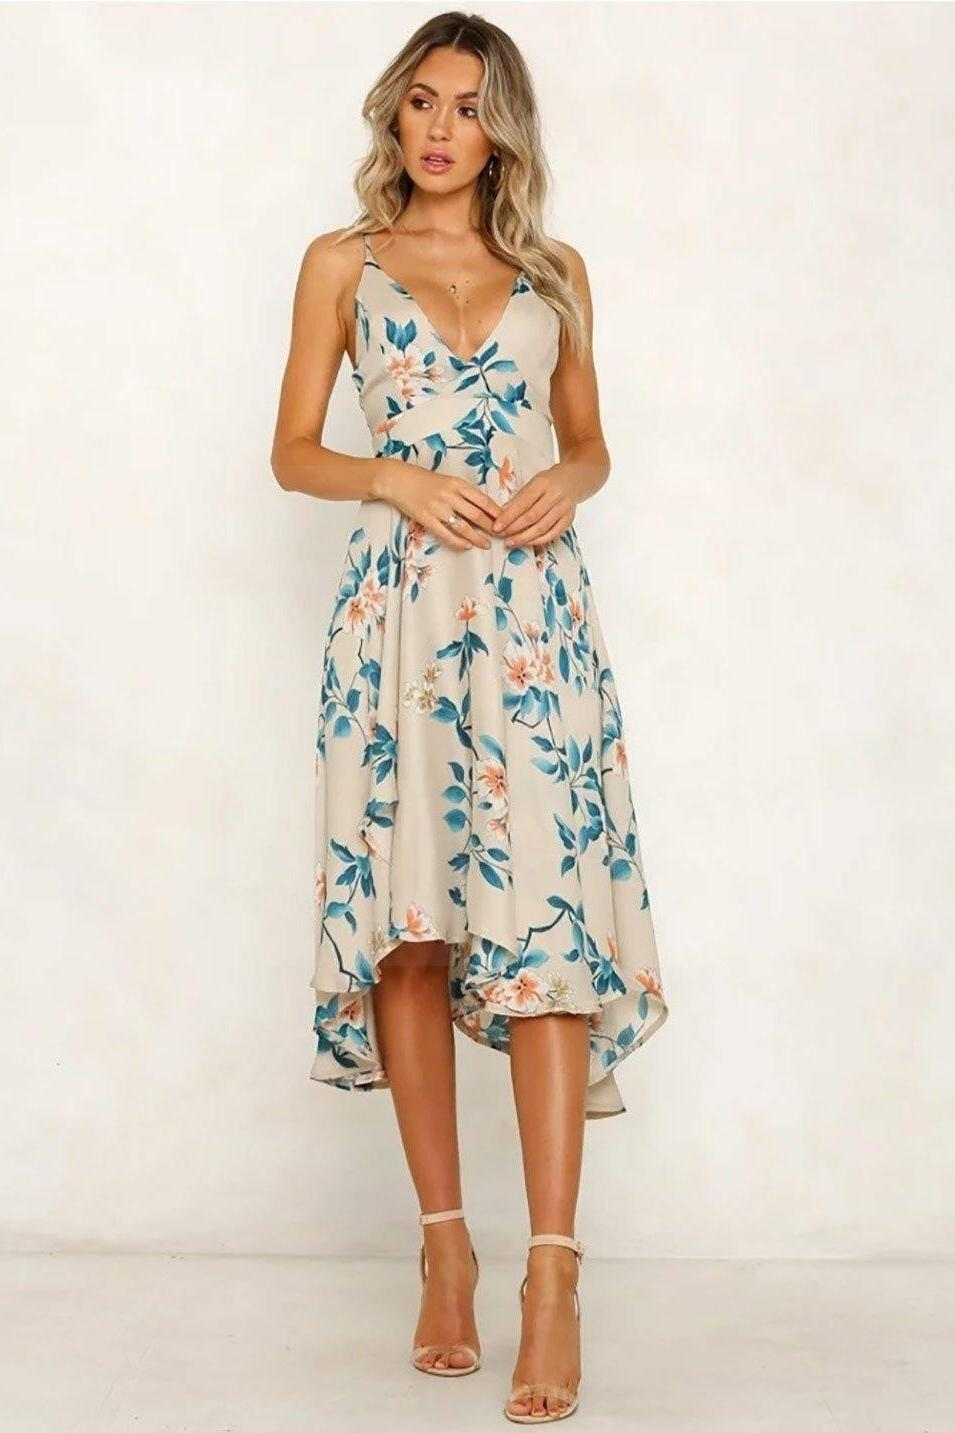 Chic Hippie Dress For A Wedding Ladylike